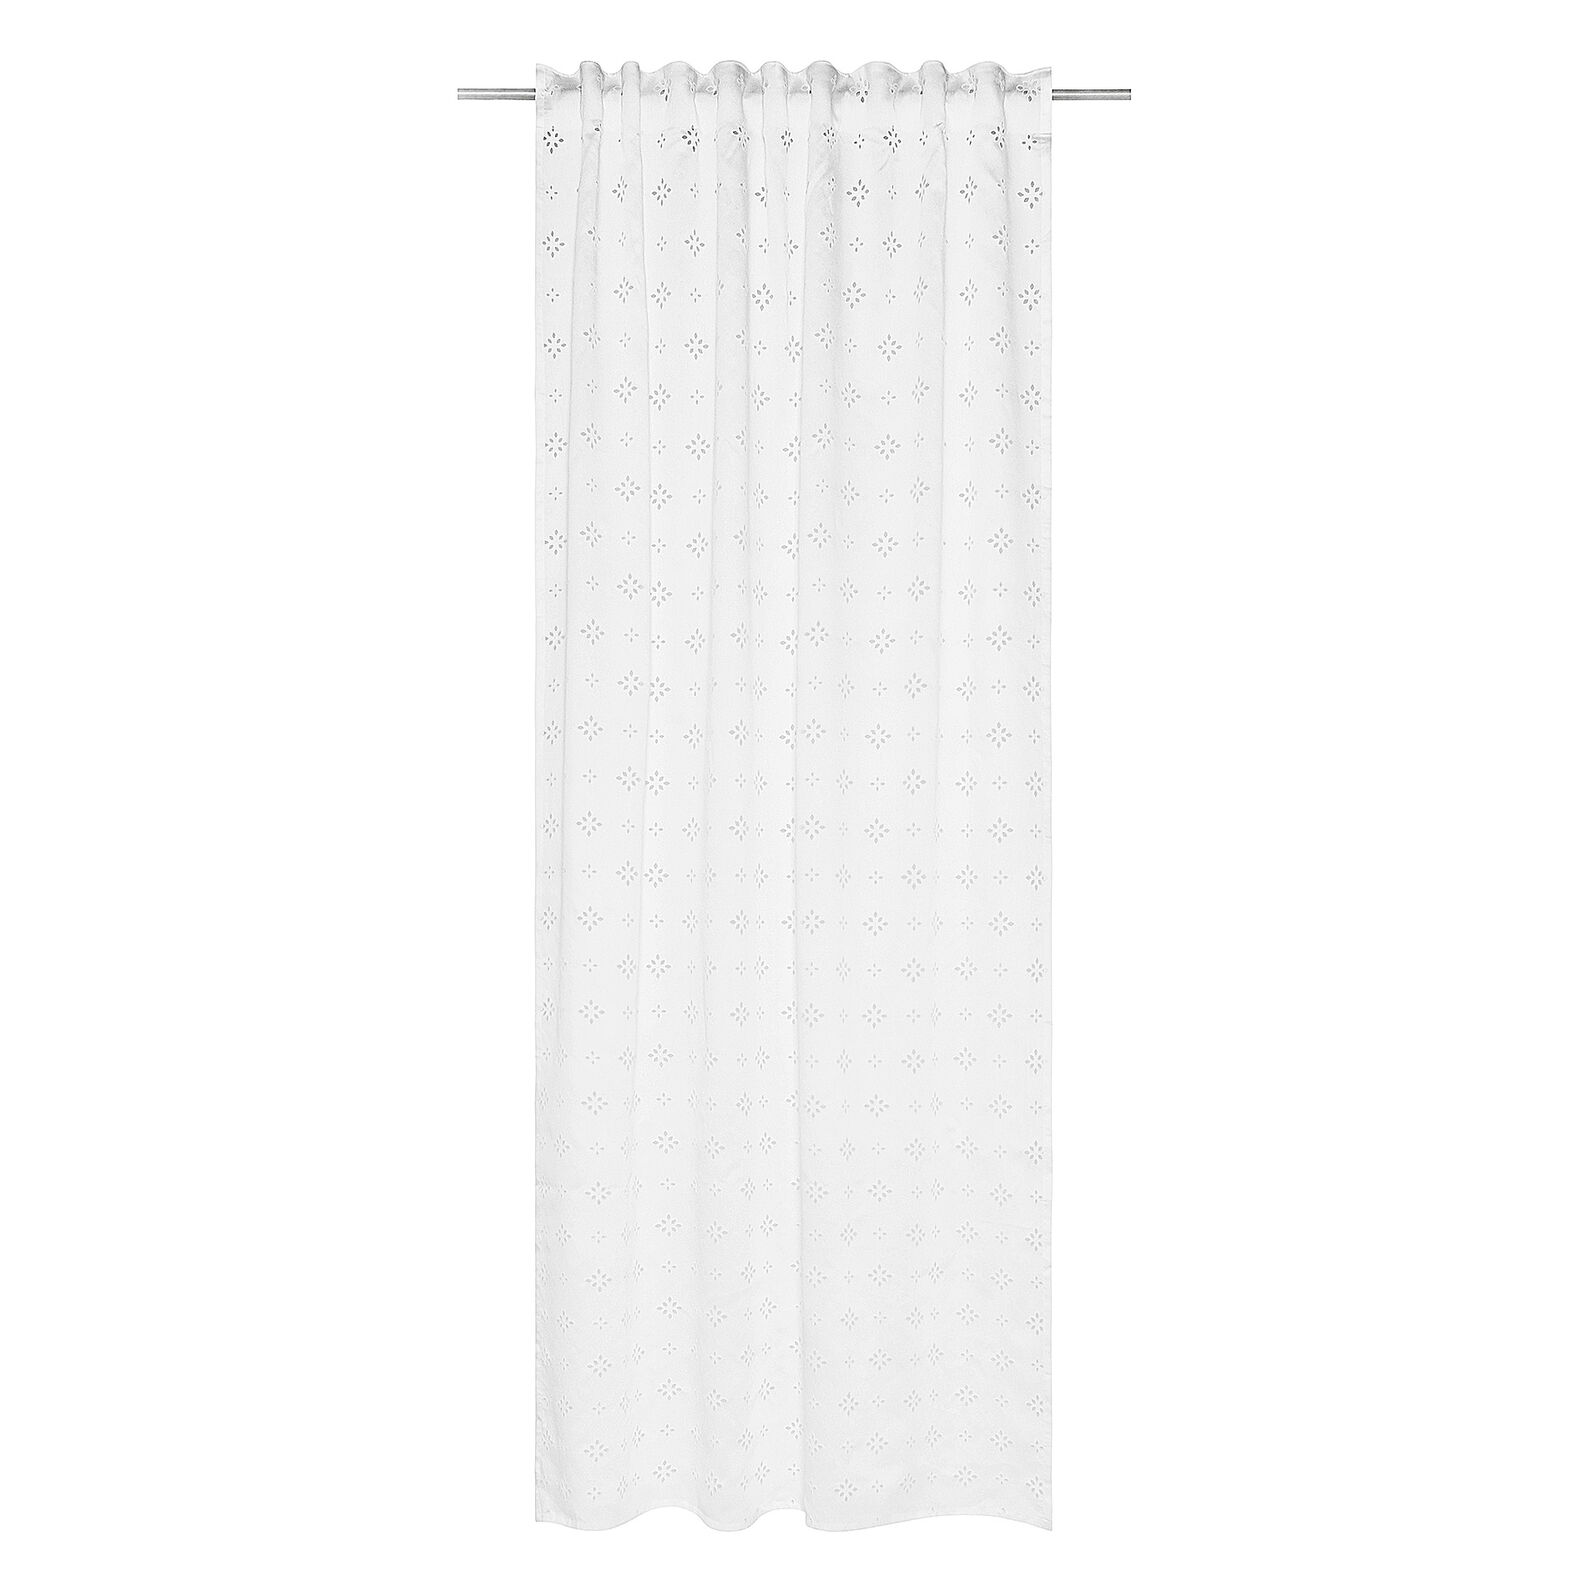 Curtain with embroidered Broderie Anglaise lace